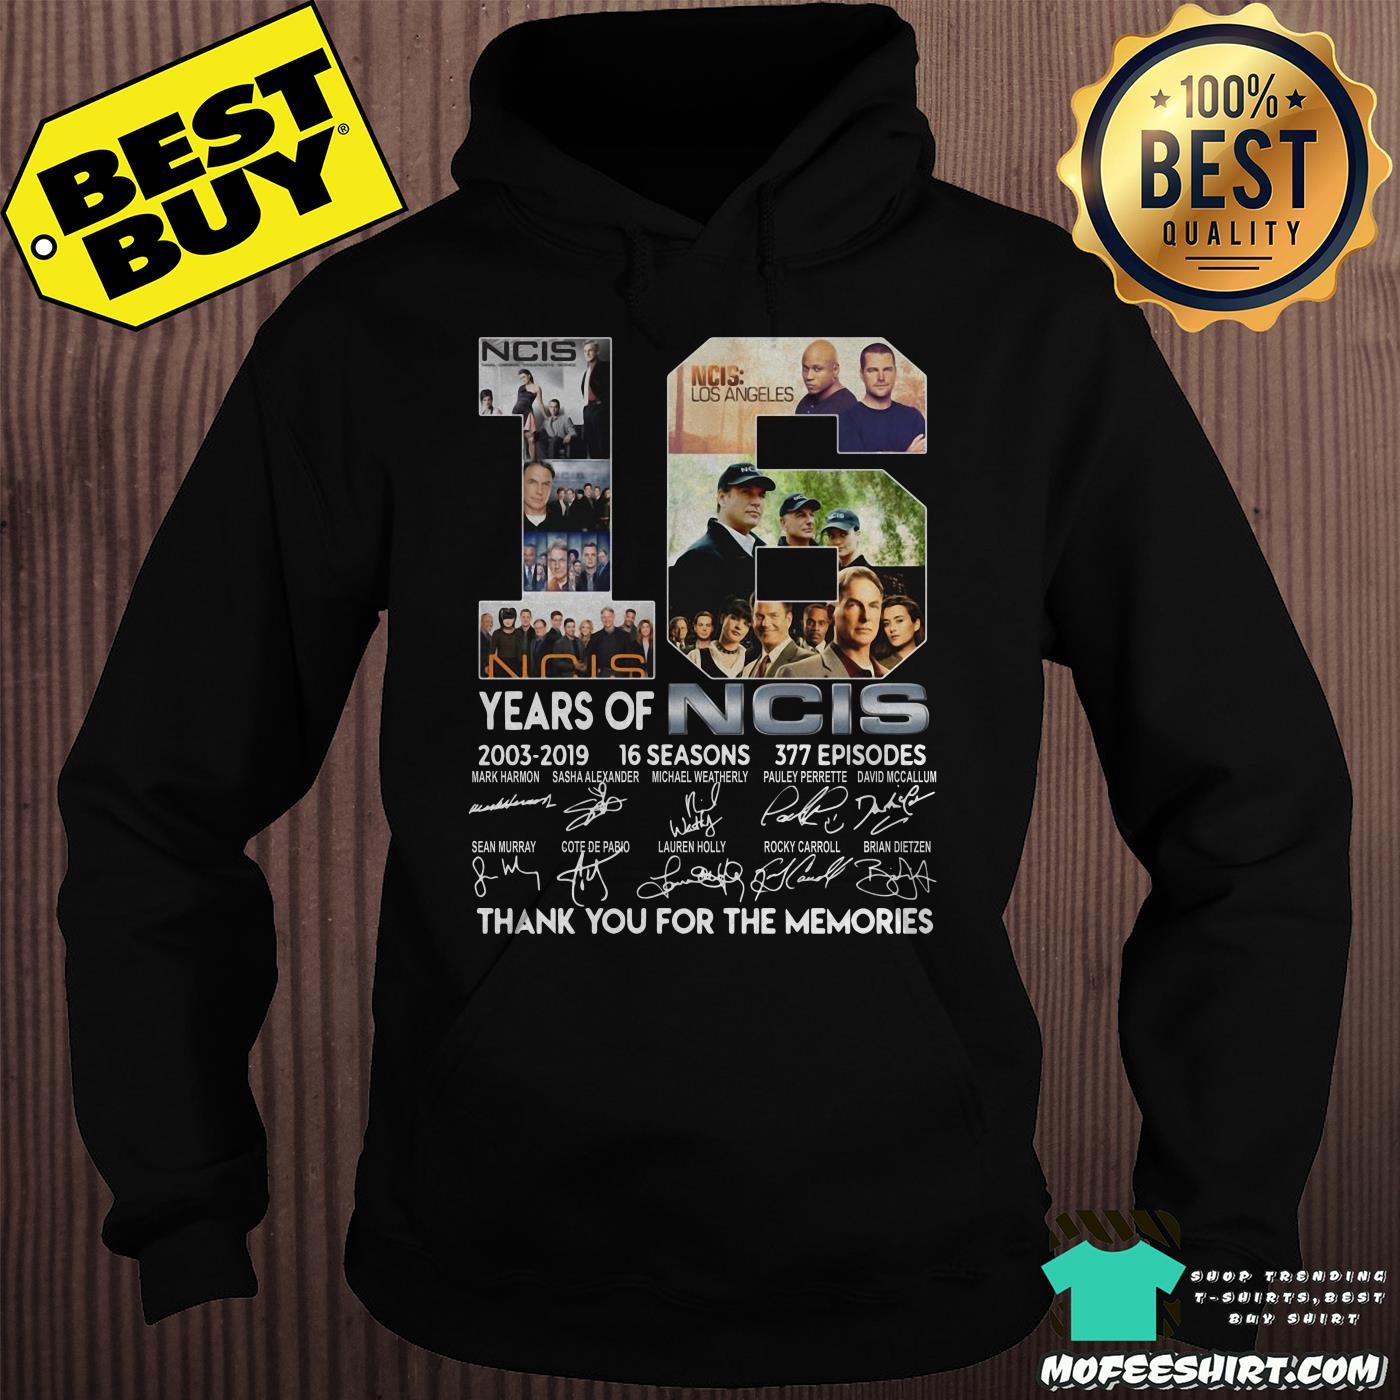 16 years of ncis 2003 2019 16 seasons 377 episodes signatures hoodie - 16 years of NCIS 2003-2019 16 Seasons 377 Episodes signatures shirt